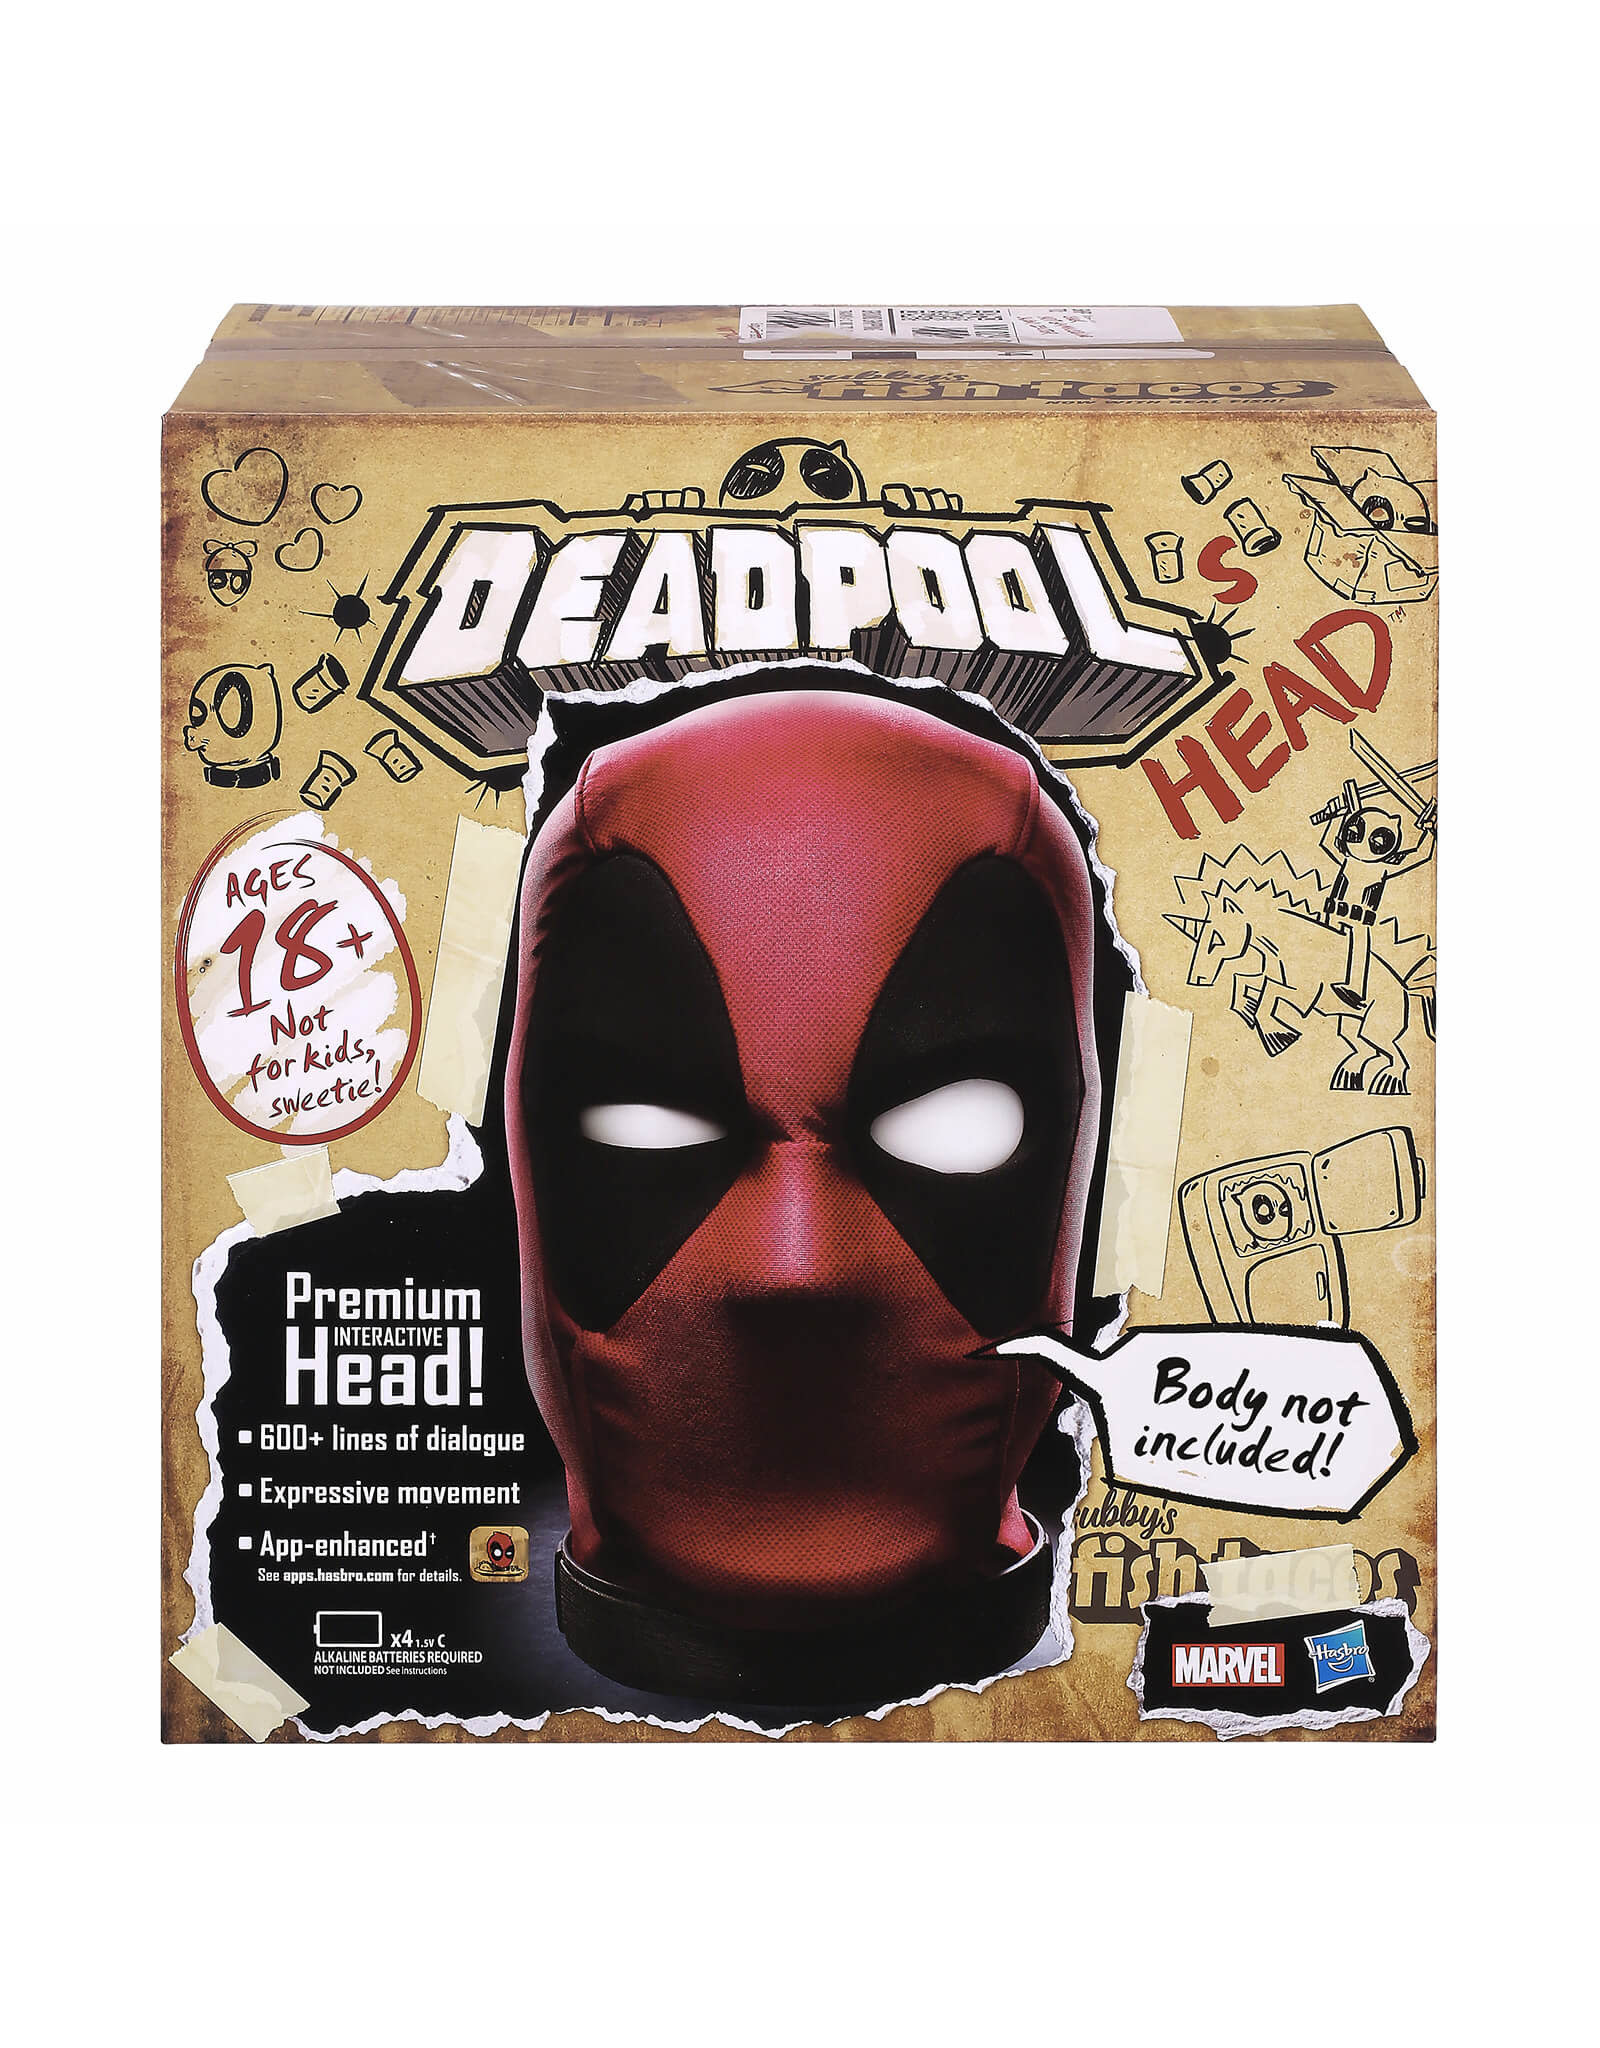 Marvel Marvel Legends Deadpool's Head Premium Interactive, Moving, Talking Electronic, App-Enhanced Adult Collectible, with 600+ SFX and Phrases